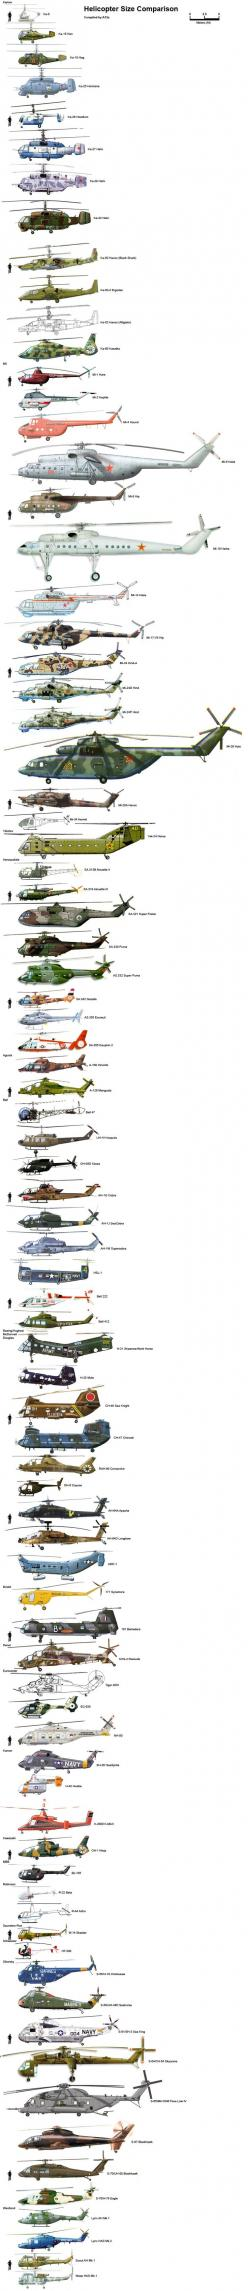 comparaison-taille-helicoptere - La boite verte: Picture, Military Aircraft Helicopters, Airplane, Military Helicopters, Helicopters Com, Aviones Helicópteros Aircrafts, Russian Helicopters